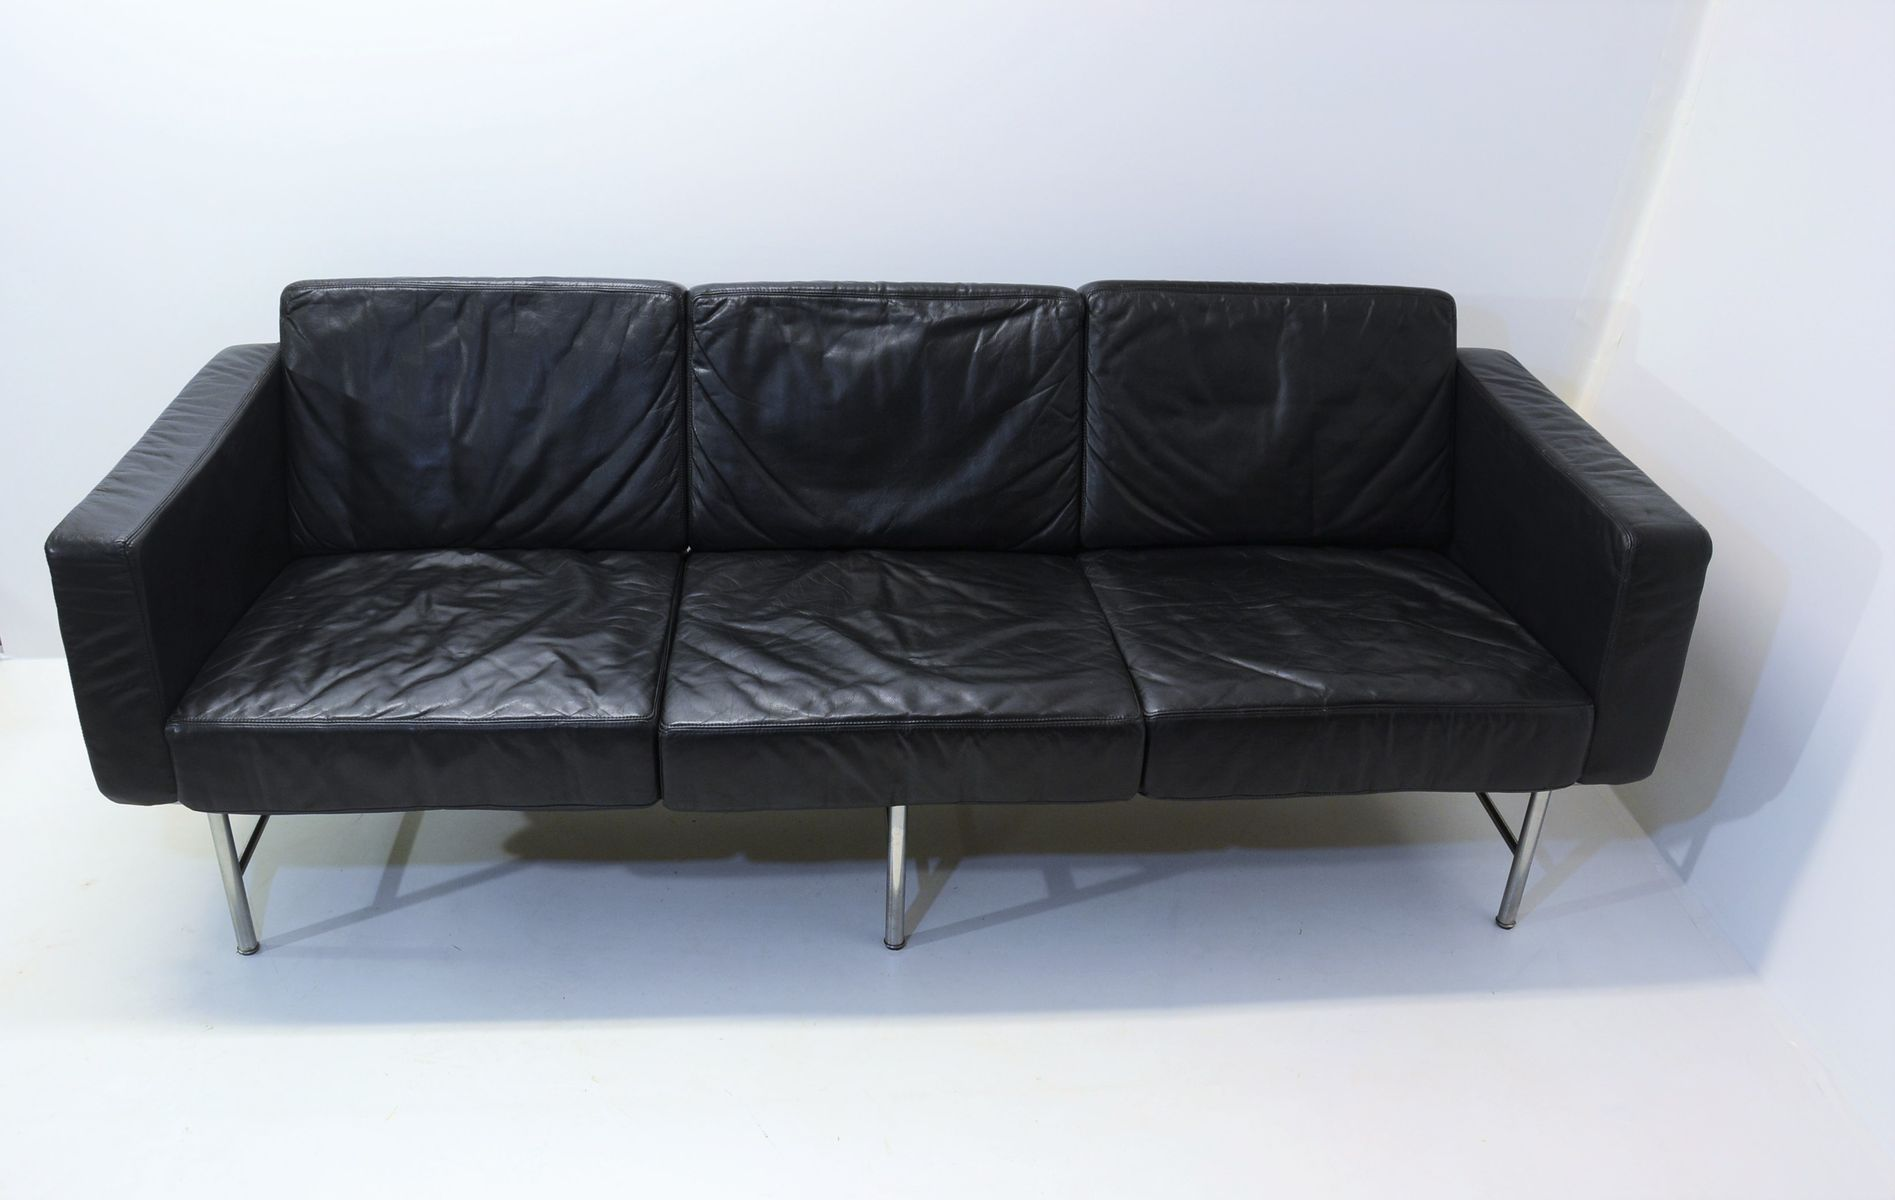 Vintage Couch Vintage Sofa By Hans Eichenberger For Strässle